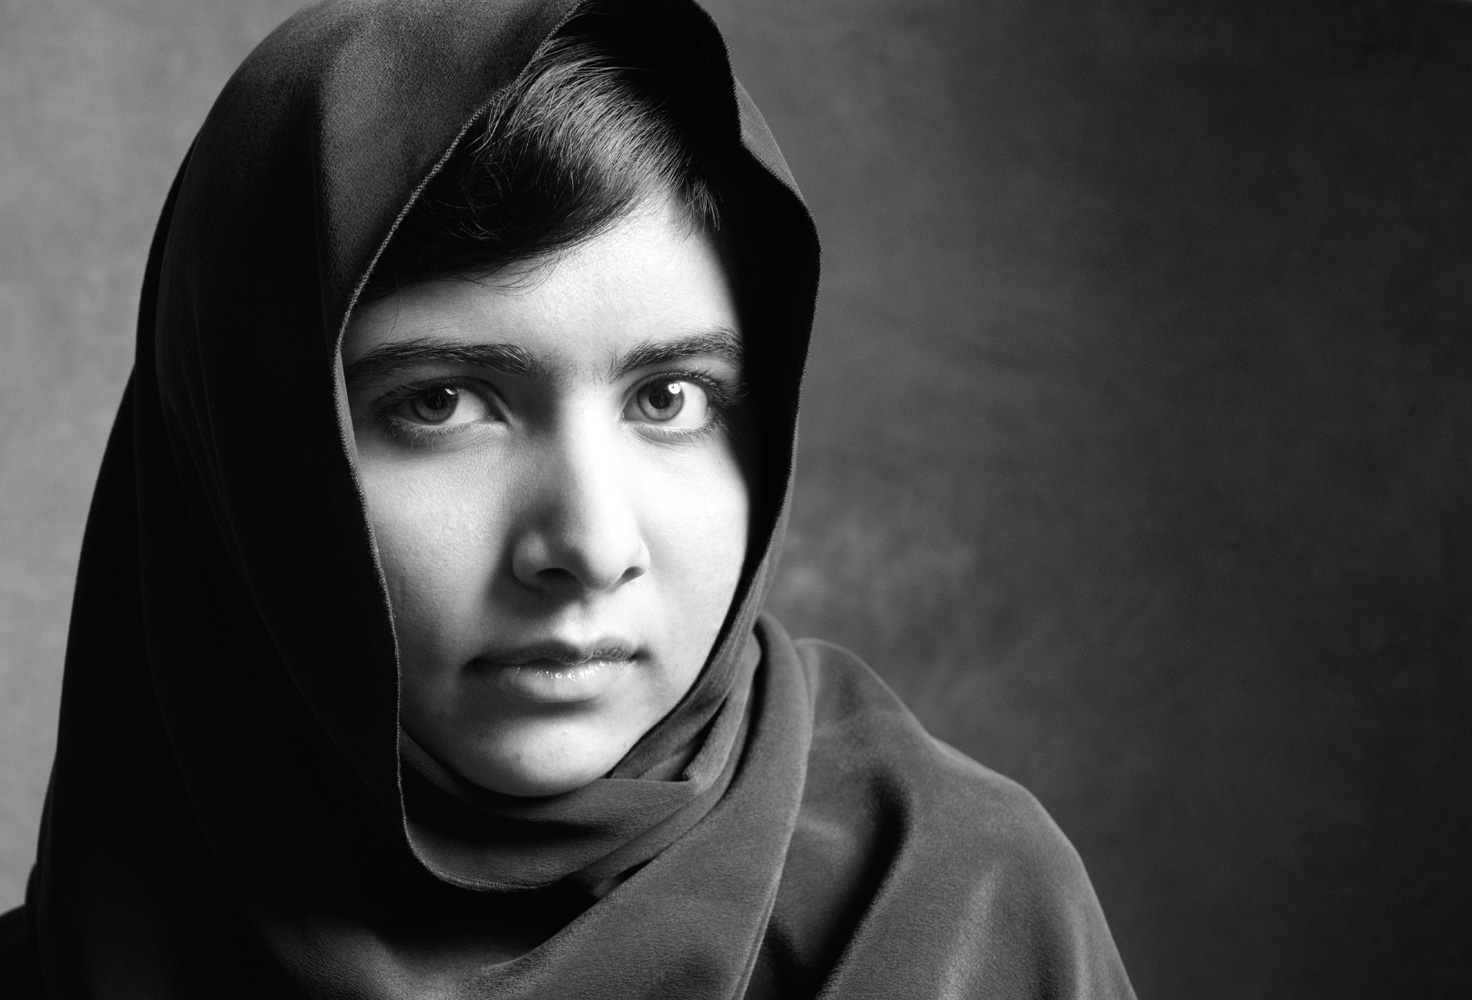 Malala Yousafzai. From  The 100 Most Influential People in the World,  April 29, 2013 issue.